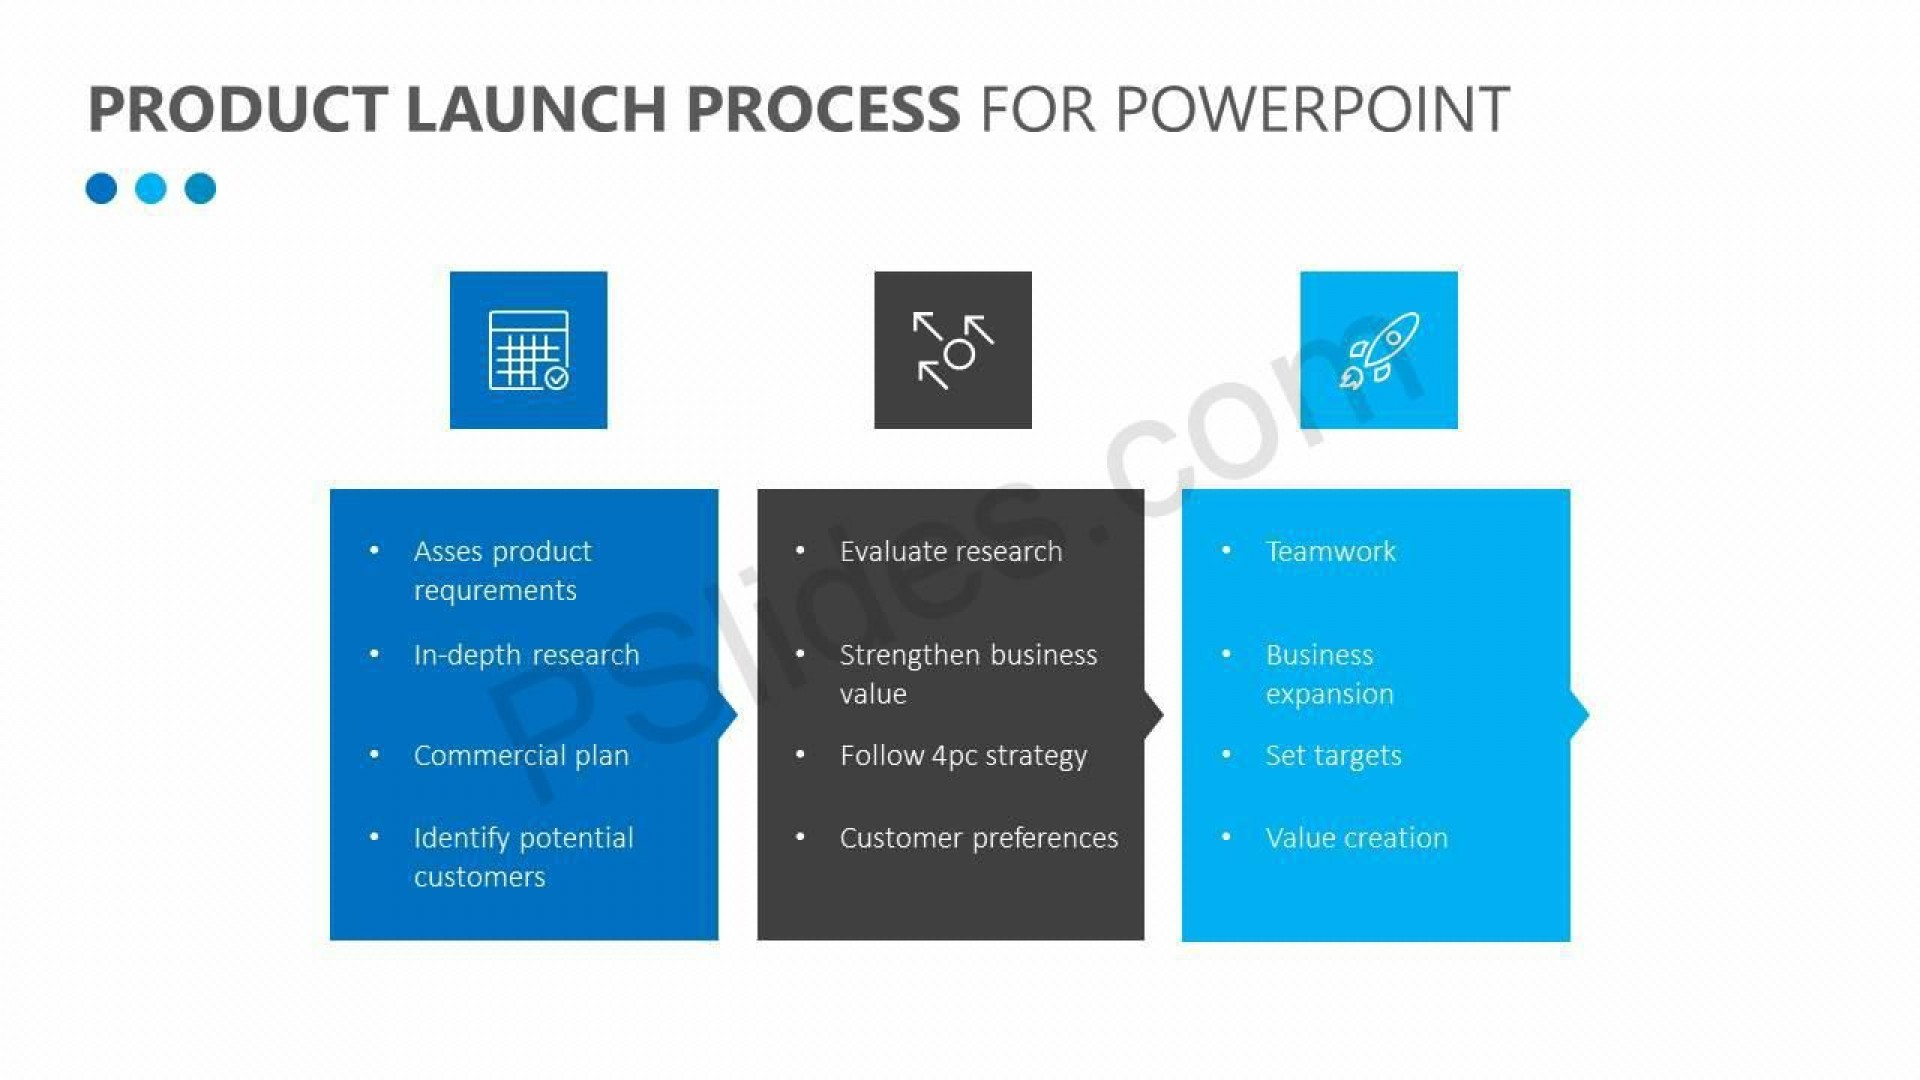 007 Singular Product Launch Plan Powerpoint Template Free Concept 1920